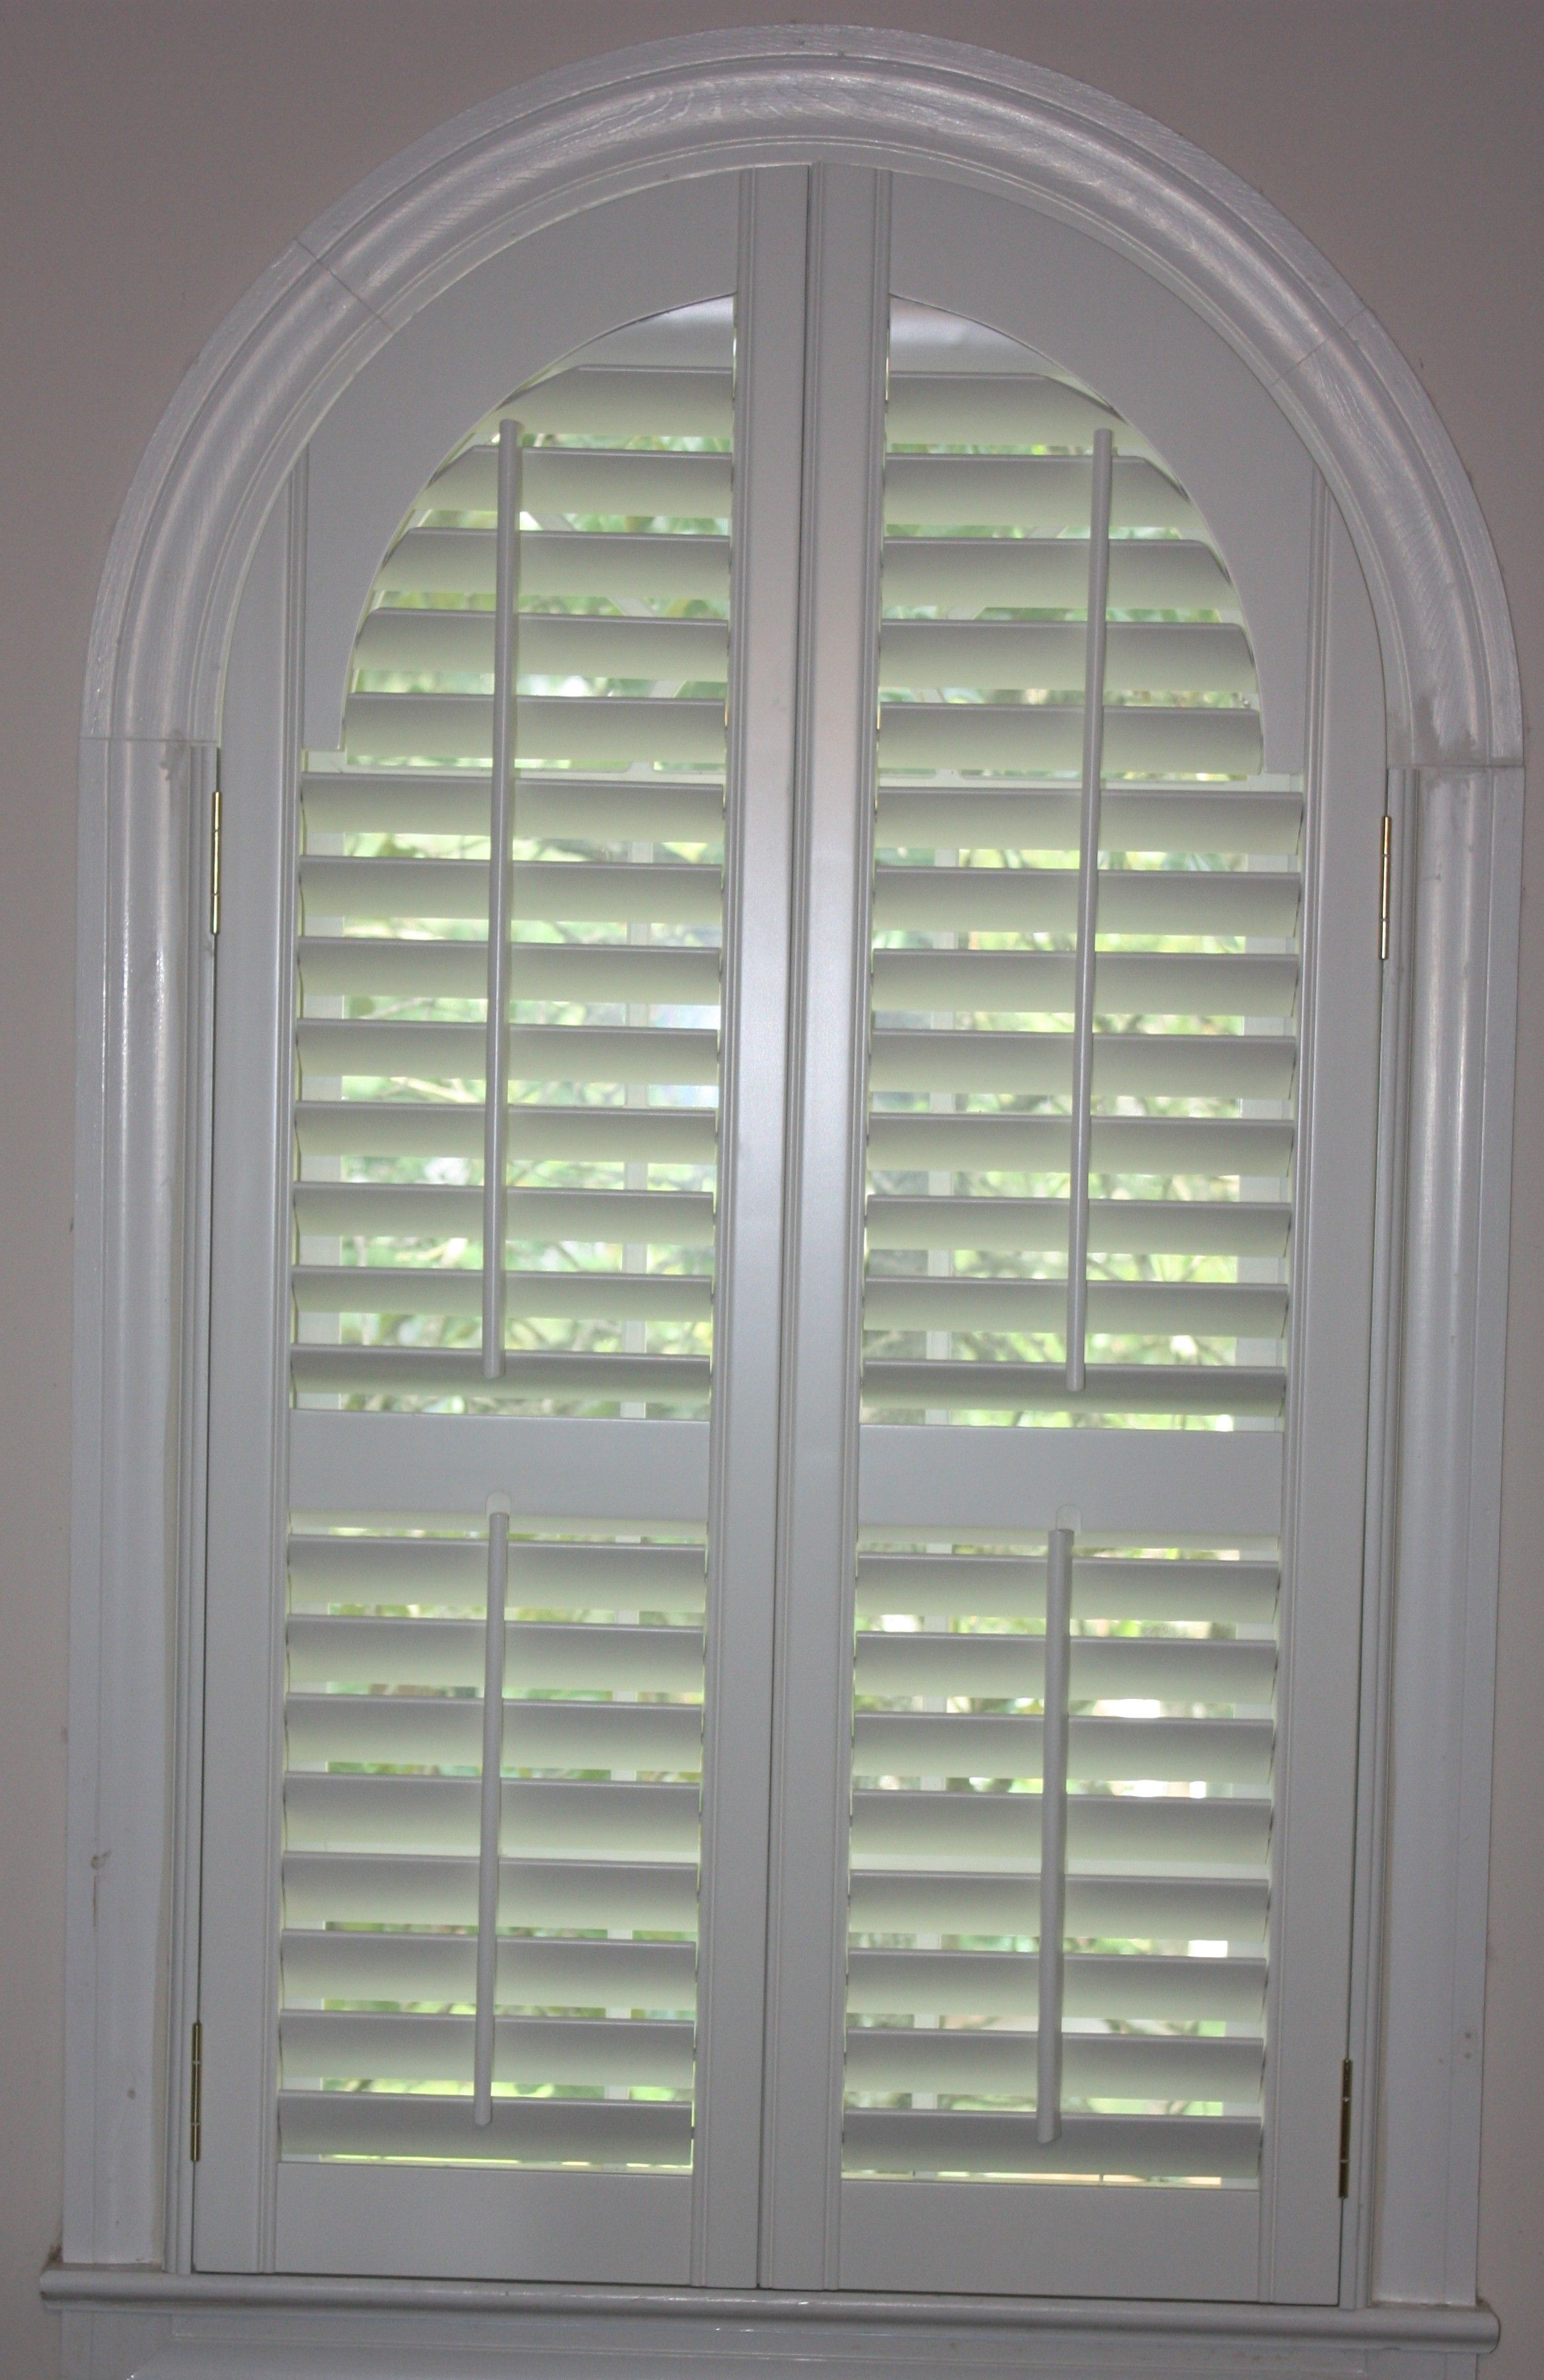 utah polywood window pin laundry kitchen blinds plantation shutters with budget